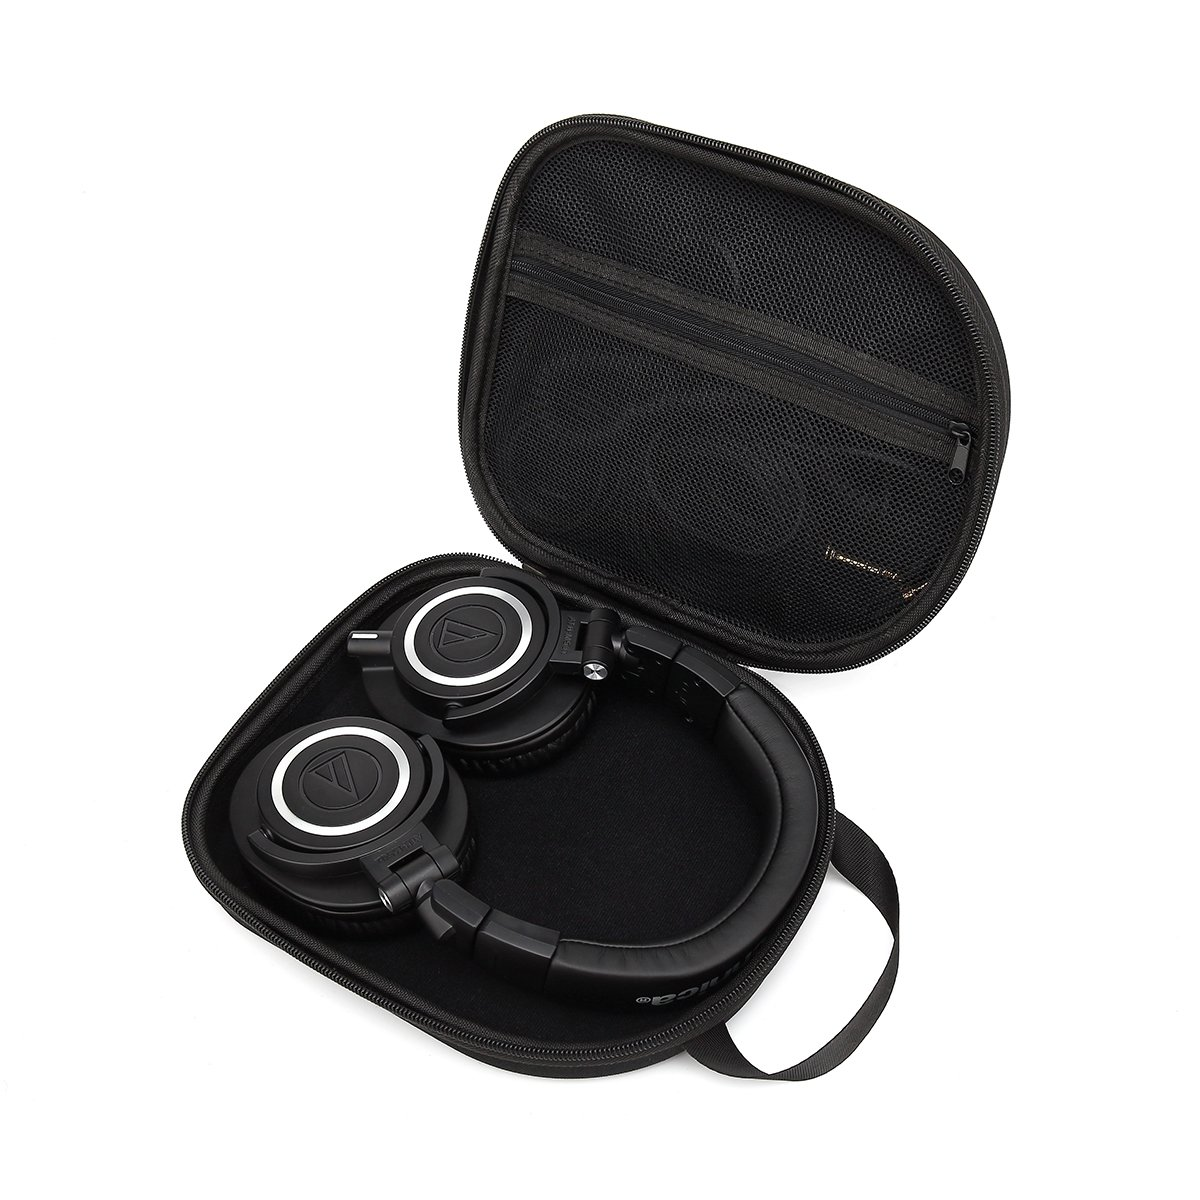 Hard Carry Travel Bag Case for Audio-Technica ATH-M50x Professional Monitor Headphones ATH-M50xMG ATH-M40x ATH-M30x ATH-M70x by Aproca (black) 4330603331